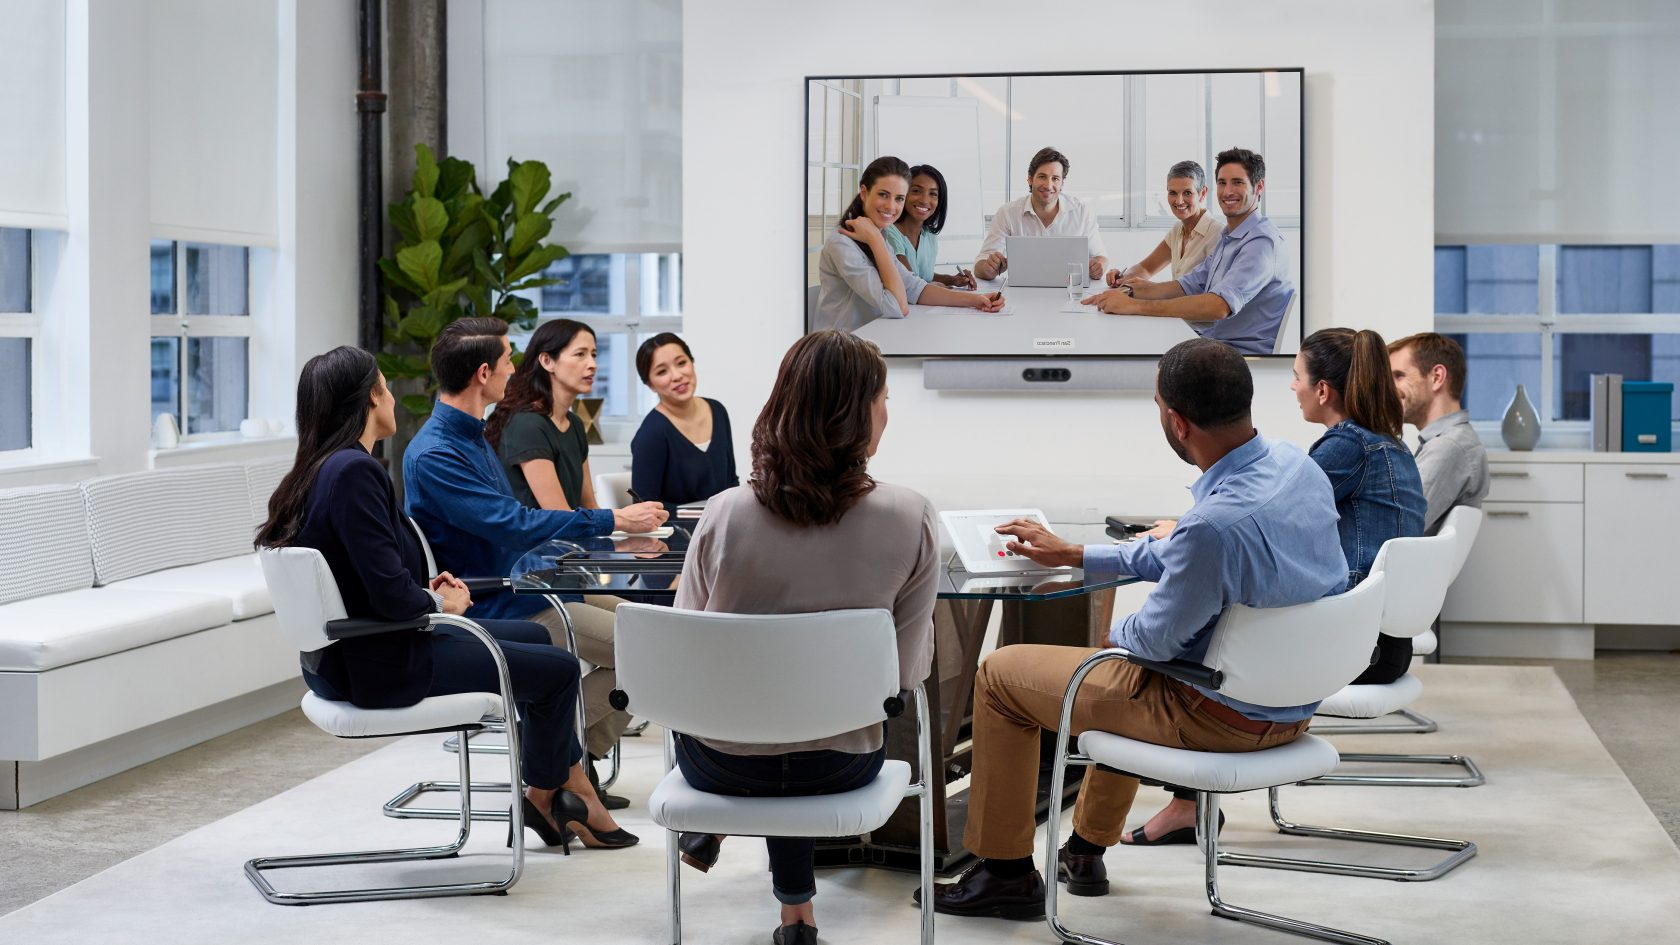 eVideo leads the way with Cloud Conferencing and Collaboration Solutions Australia wide